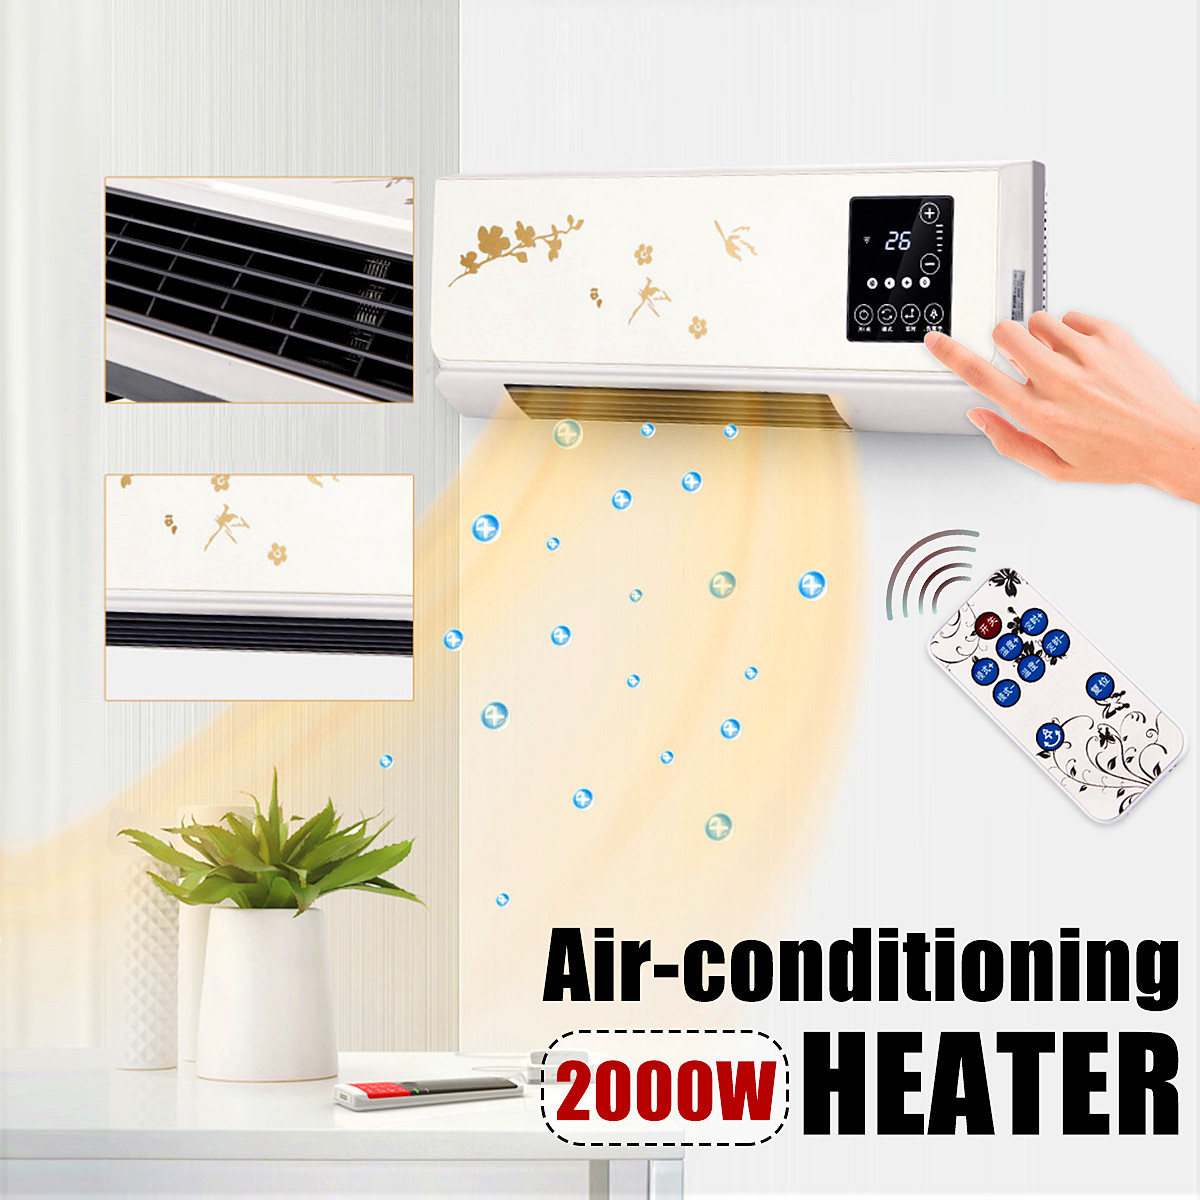 2KW Wall-mounted LED Touch Switch Heater Home Energy Saving Remote PTC Air Electric Heater Fan Bathroom Air Conditioning Cooler